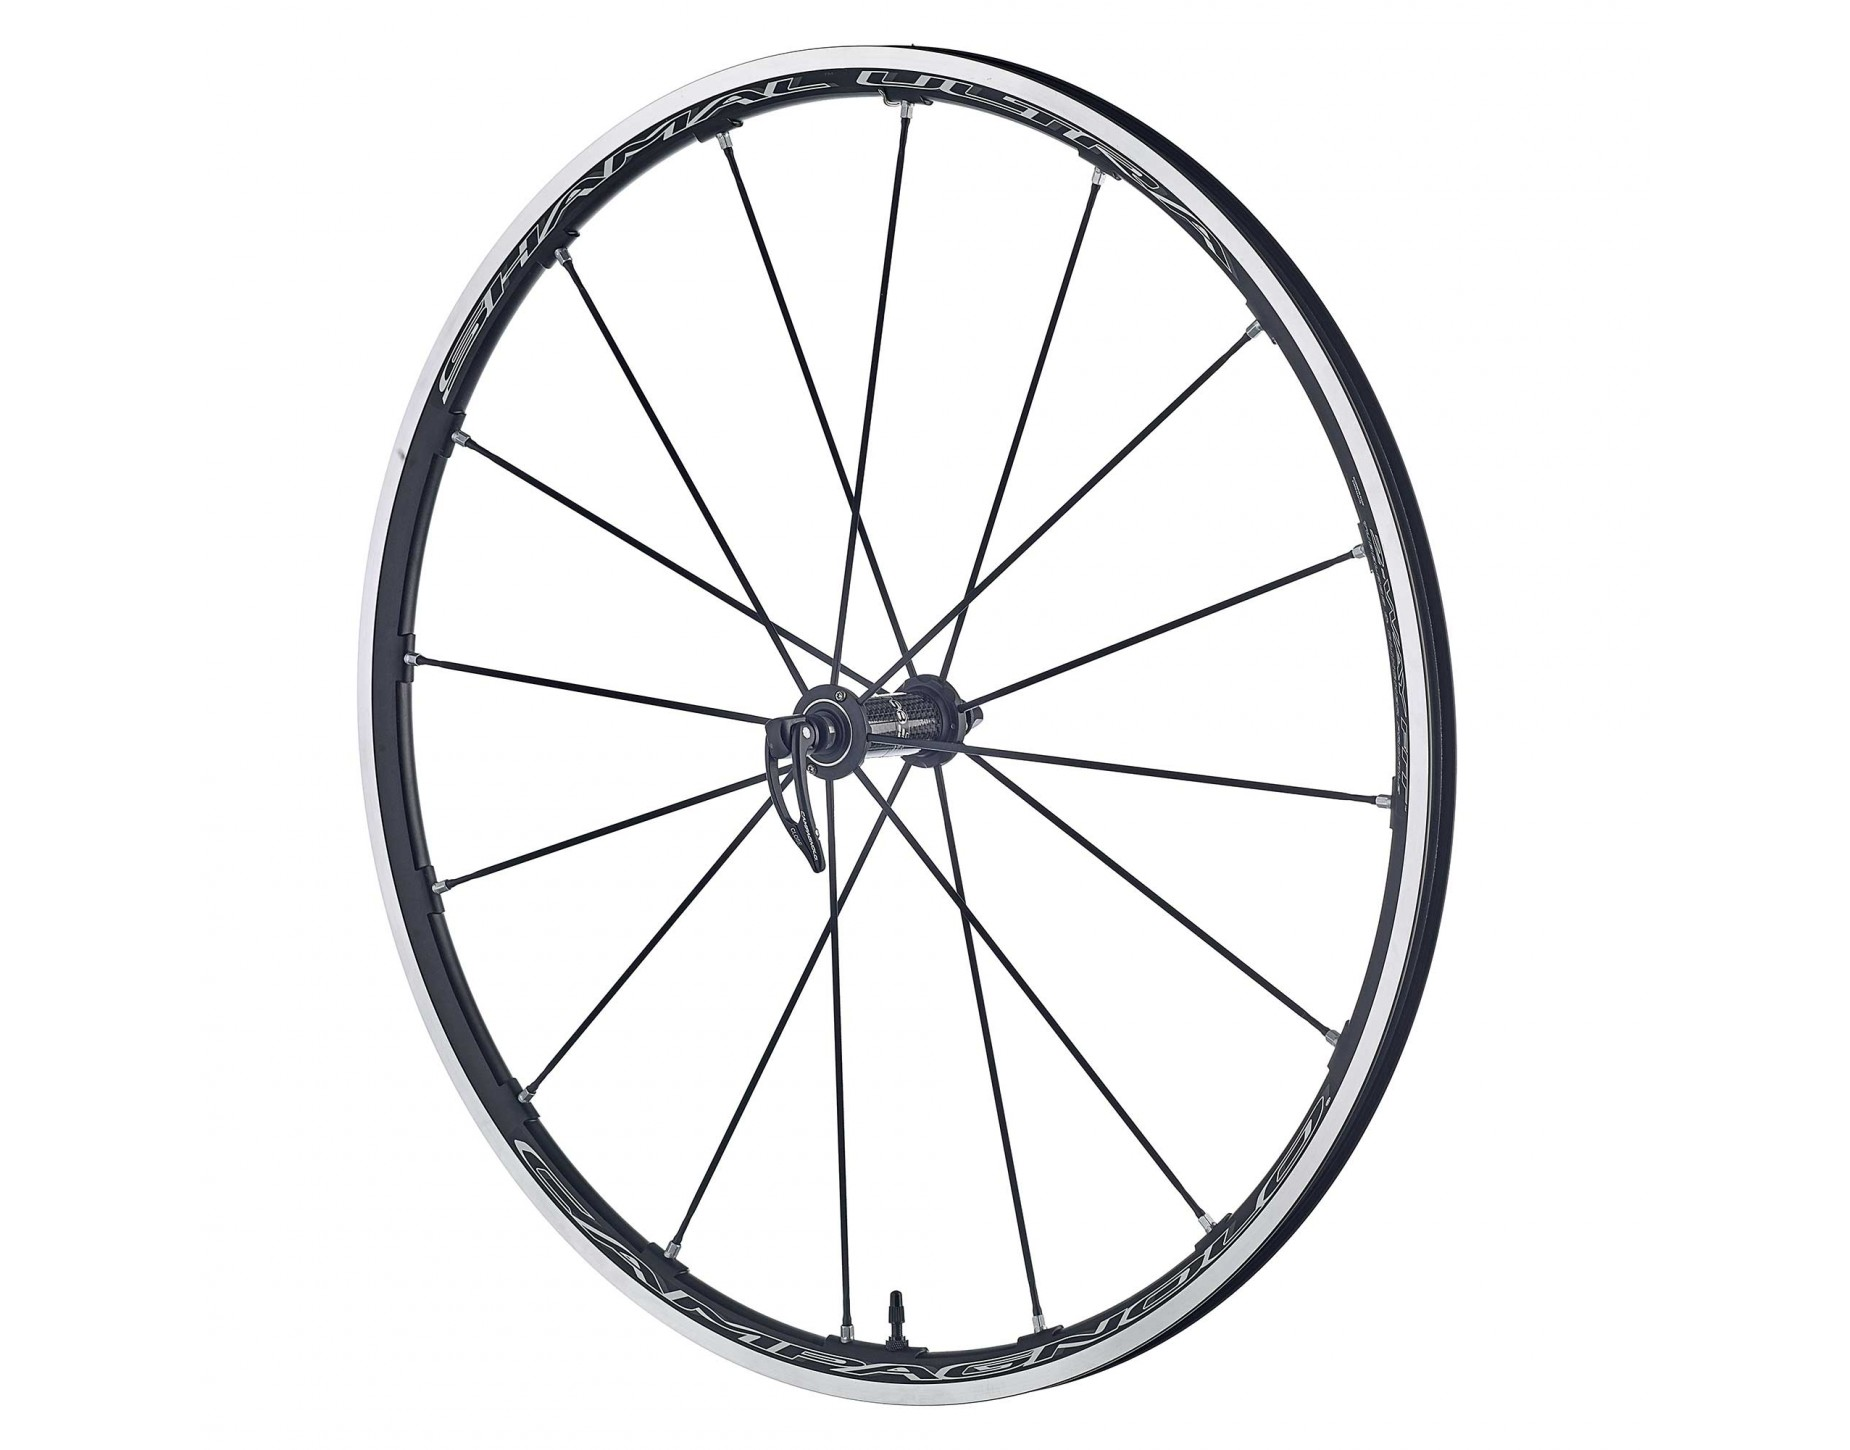 Campagnolo Shamal Ultra C17 2 Way Fit Front Wheel